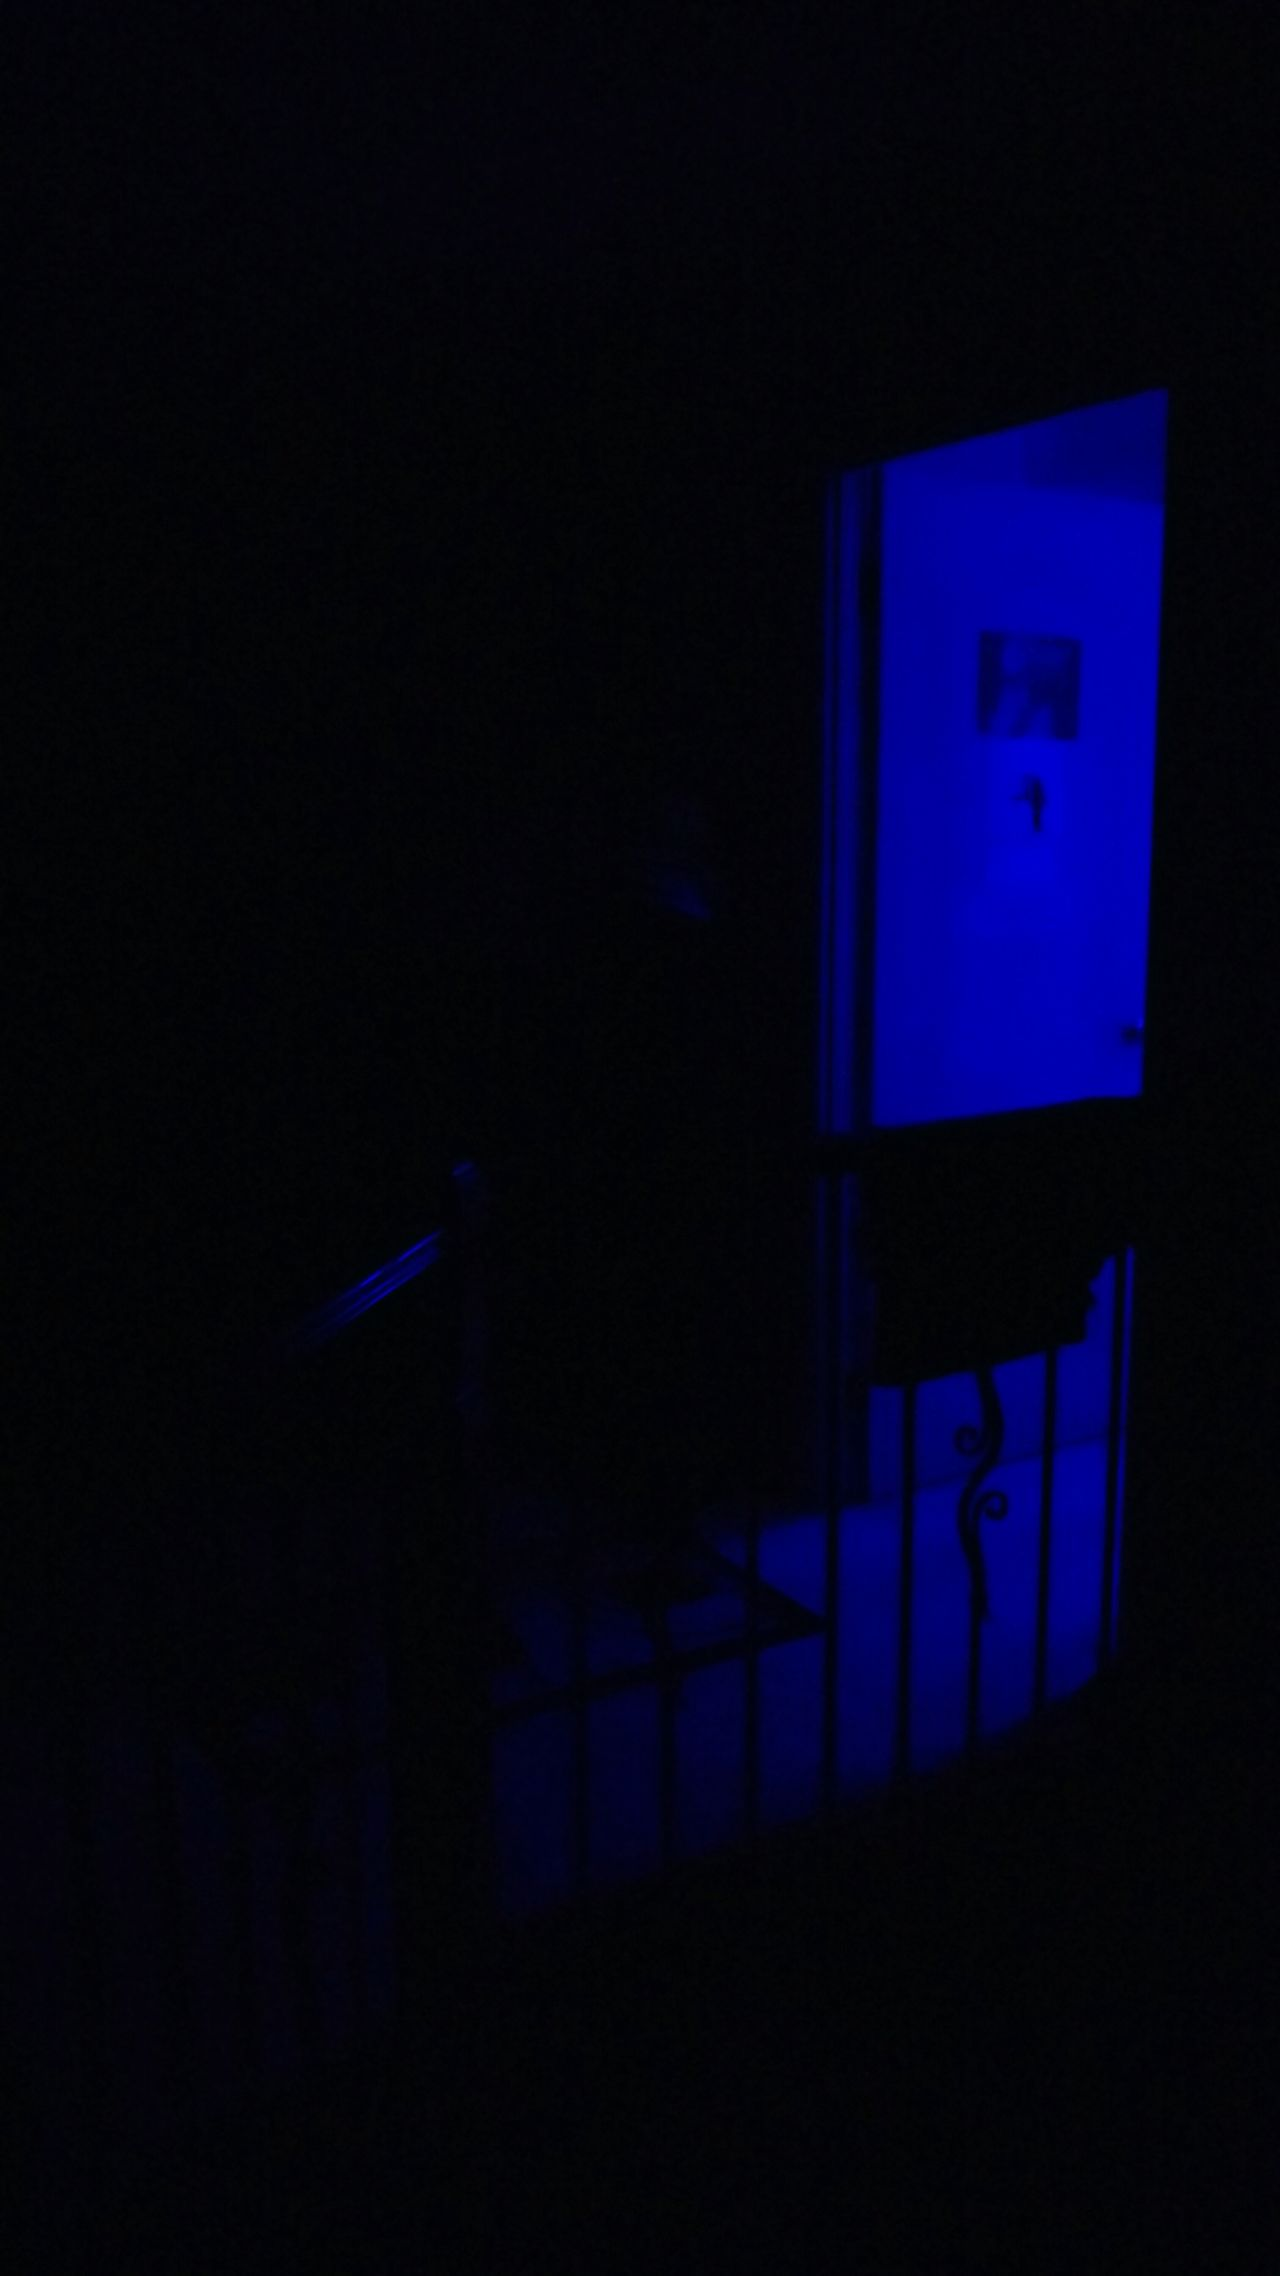 Home Alone Darkness And Light Time For Bed Blue Darkness